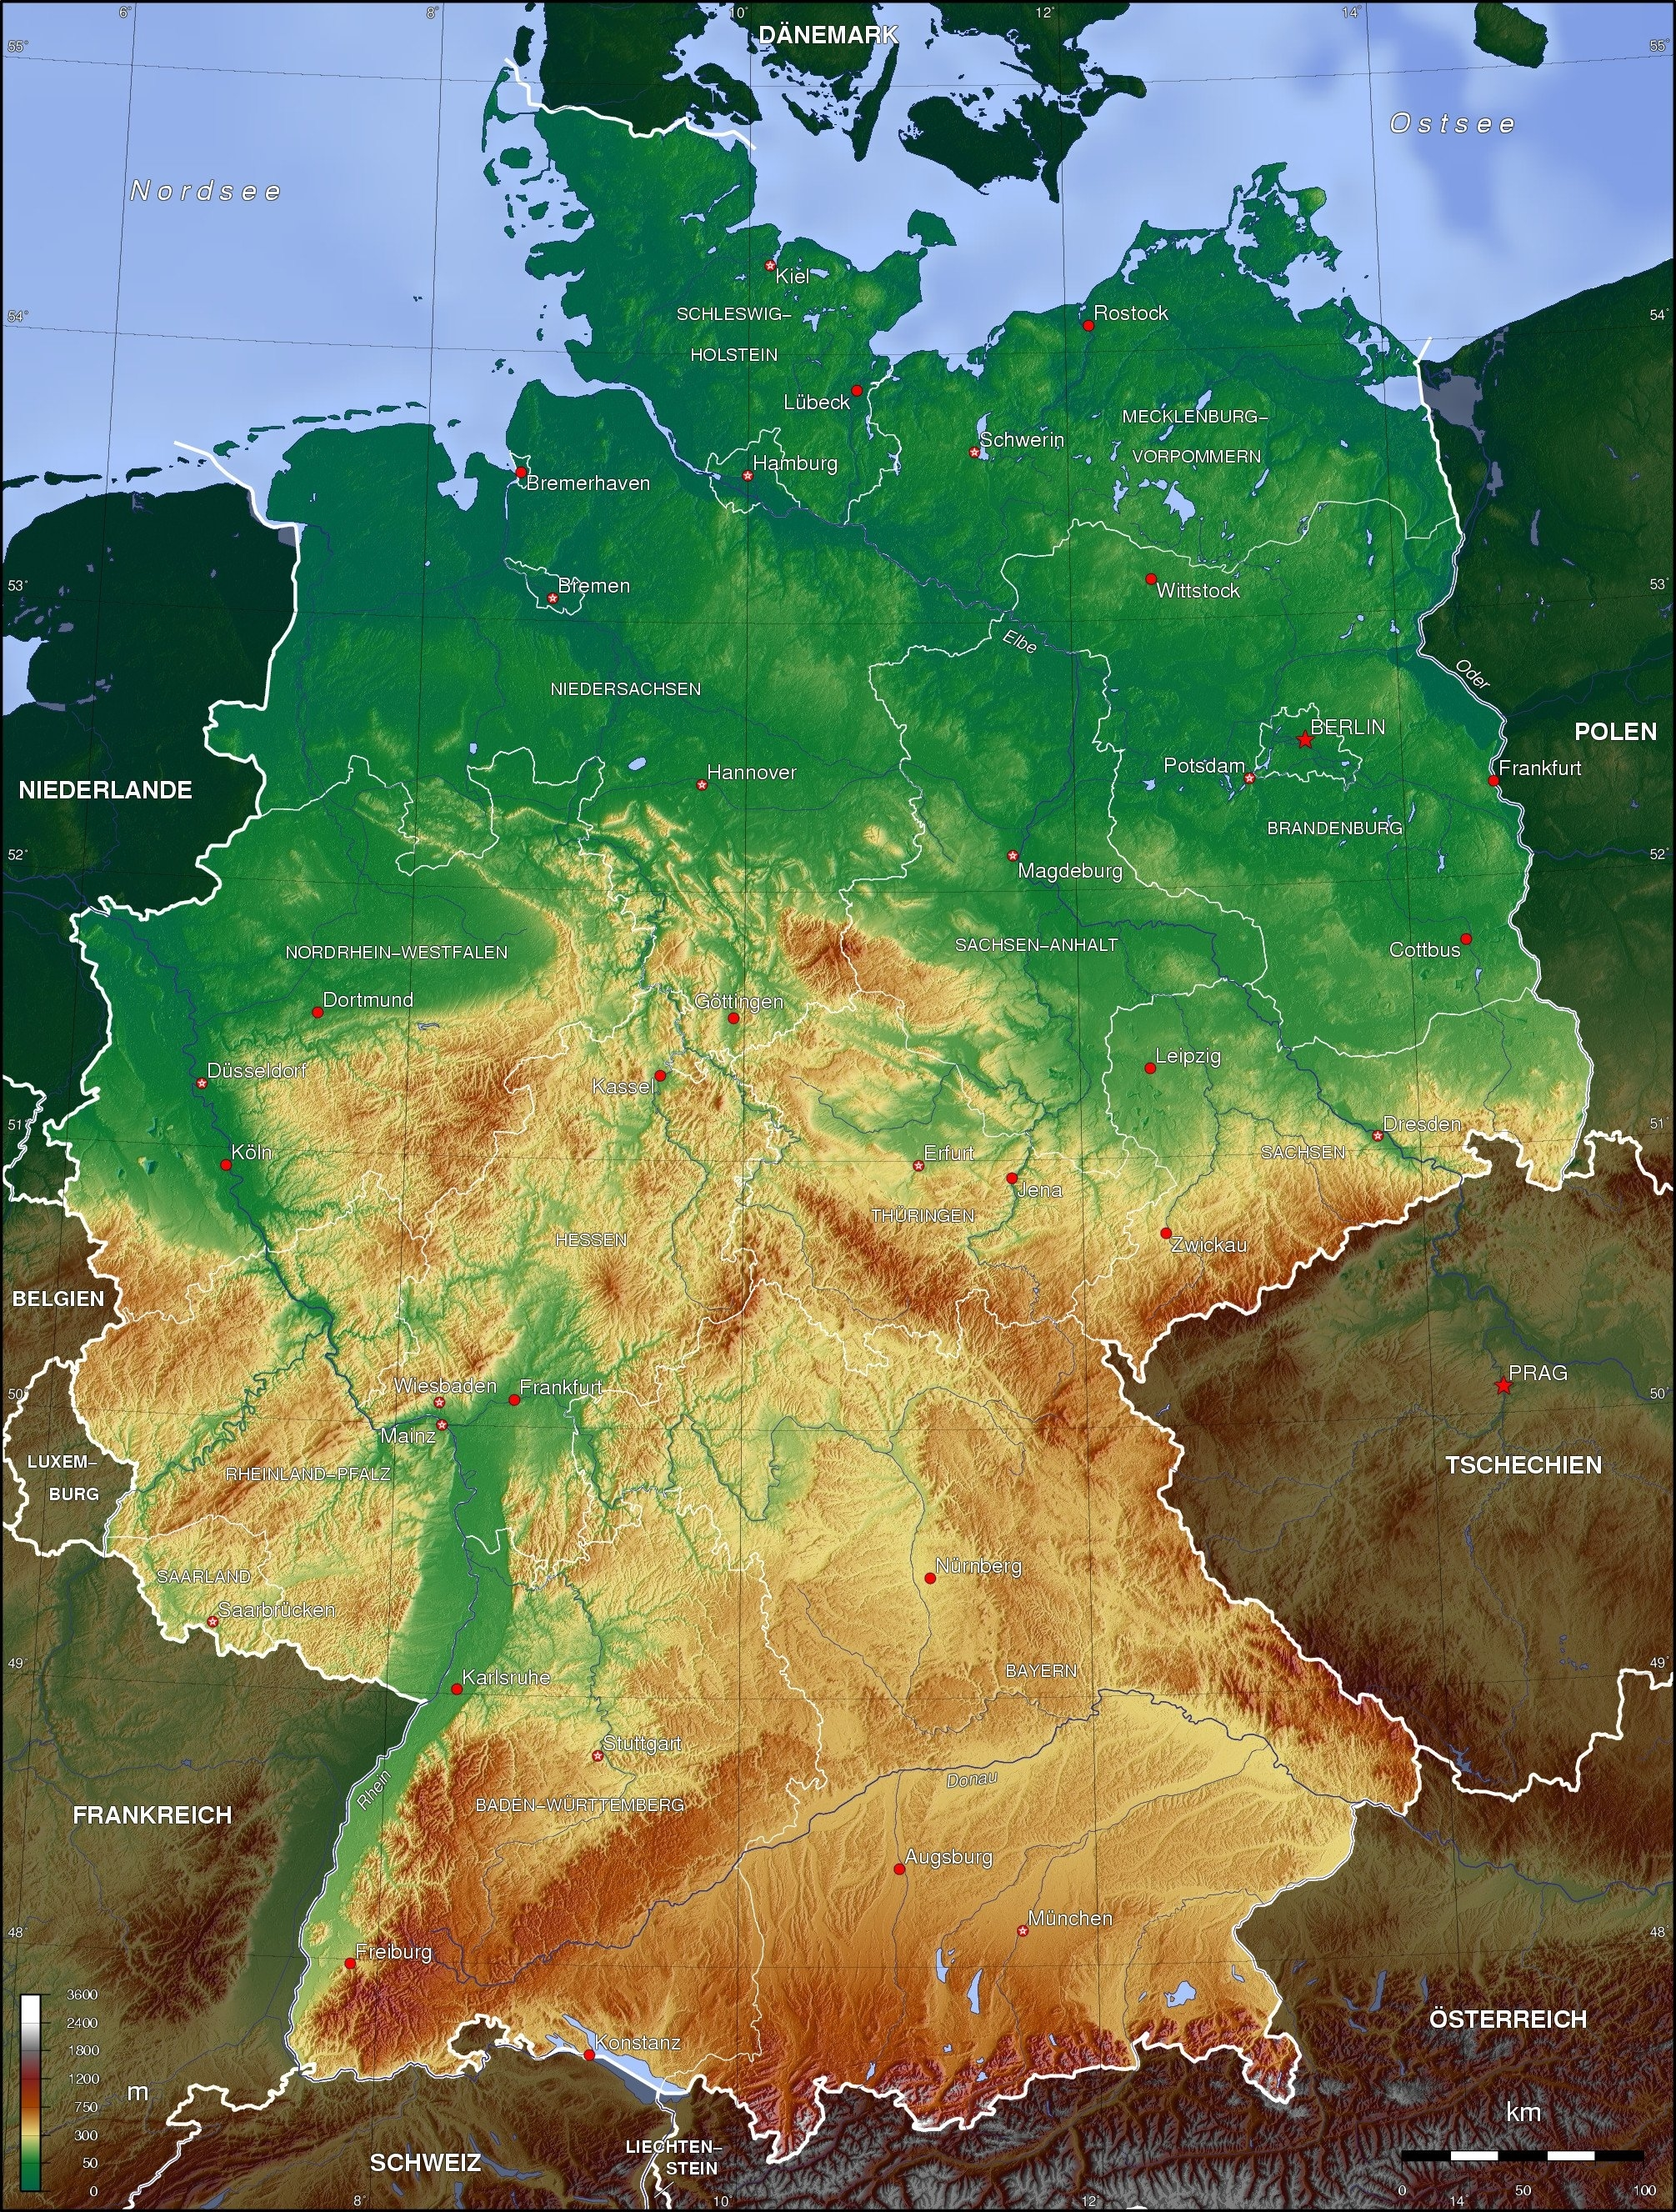 Detailed Topographic Map Of Germany (2011 X 2654) : Mapporn inside Germany Topographic Map